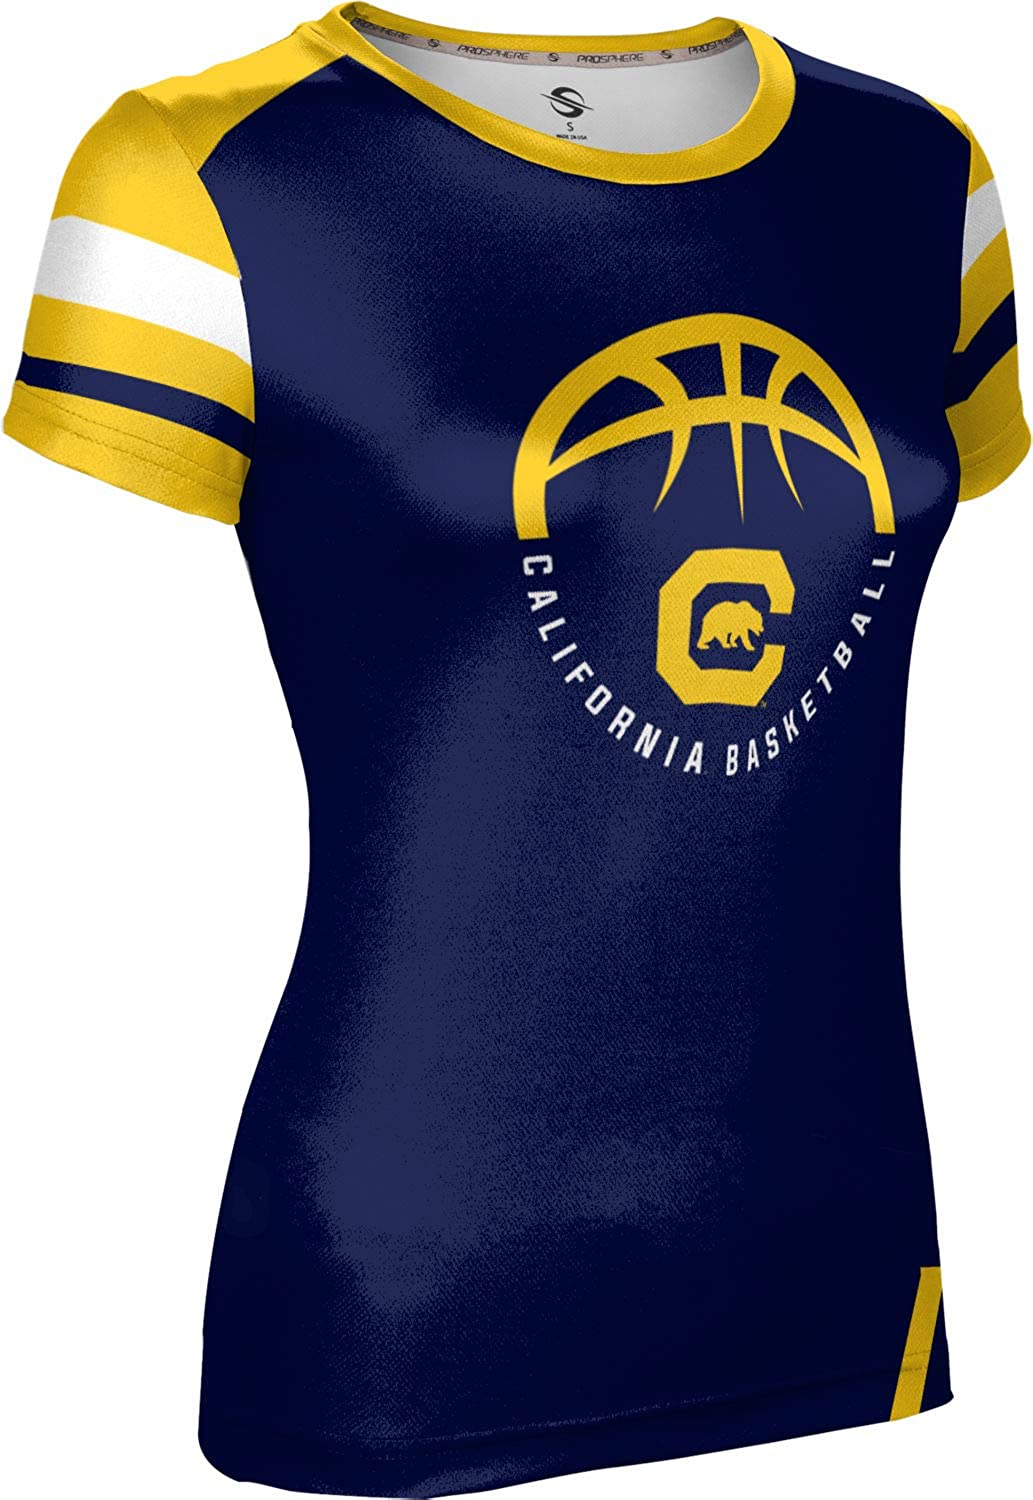 ProSphere University of California Old School Berkeley Basketball Girls Performance T-Shirt